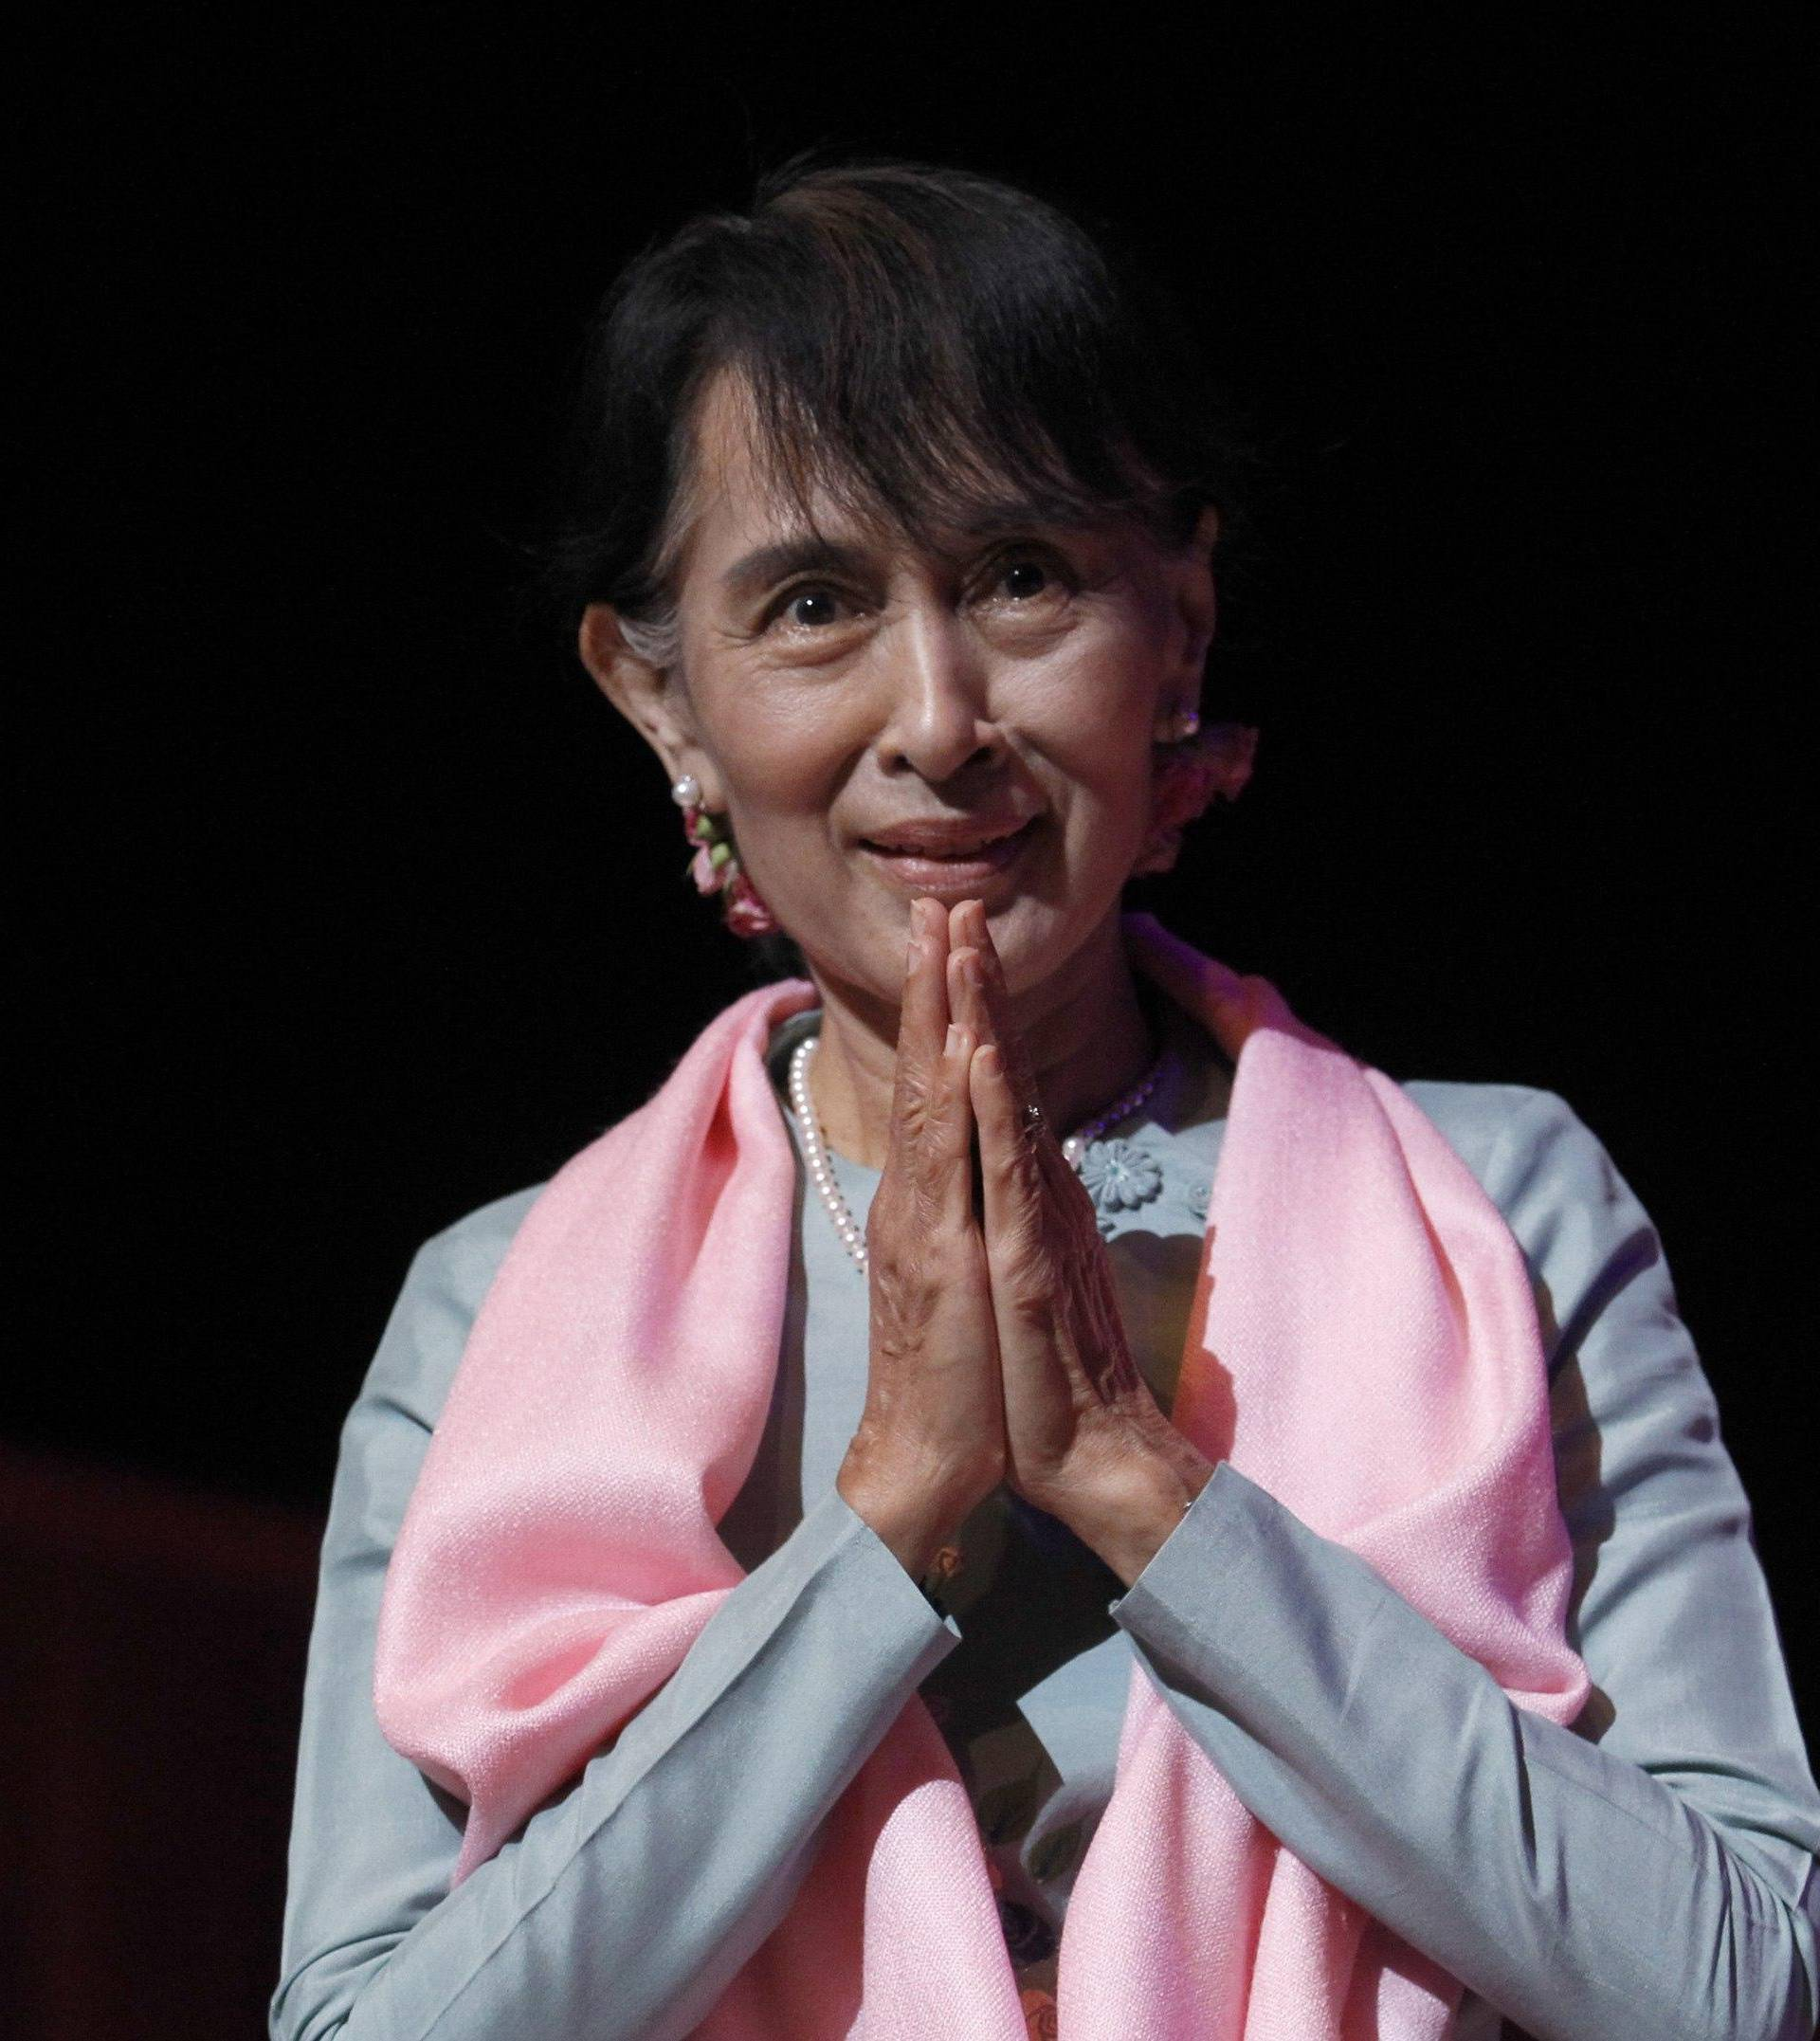 Aung San Suu Kyi visits to UK Day 4